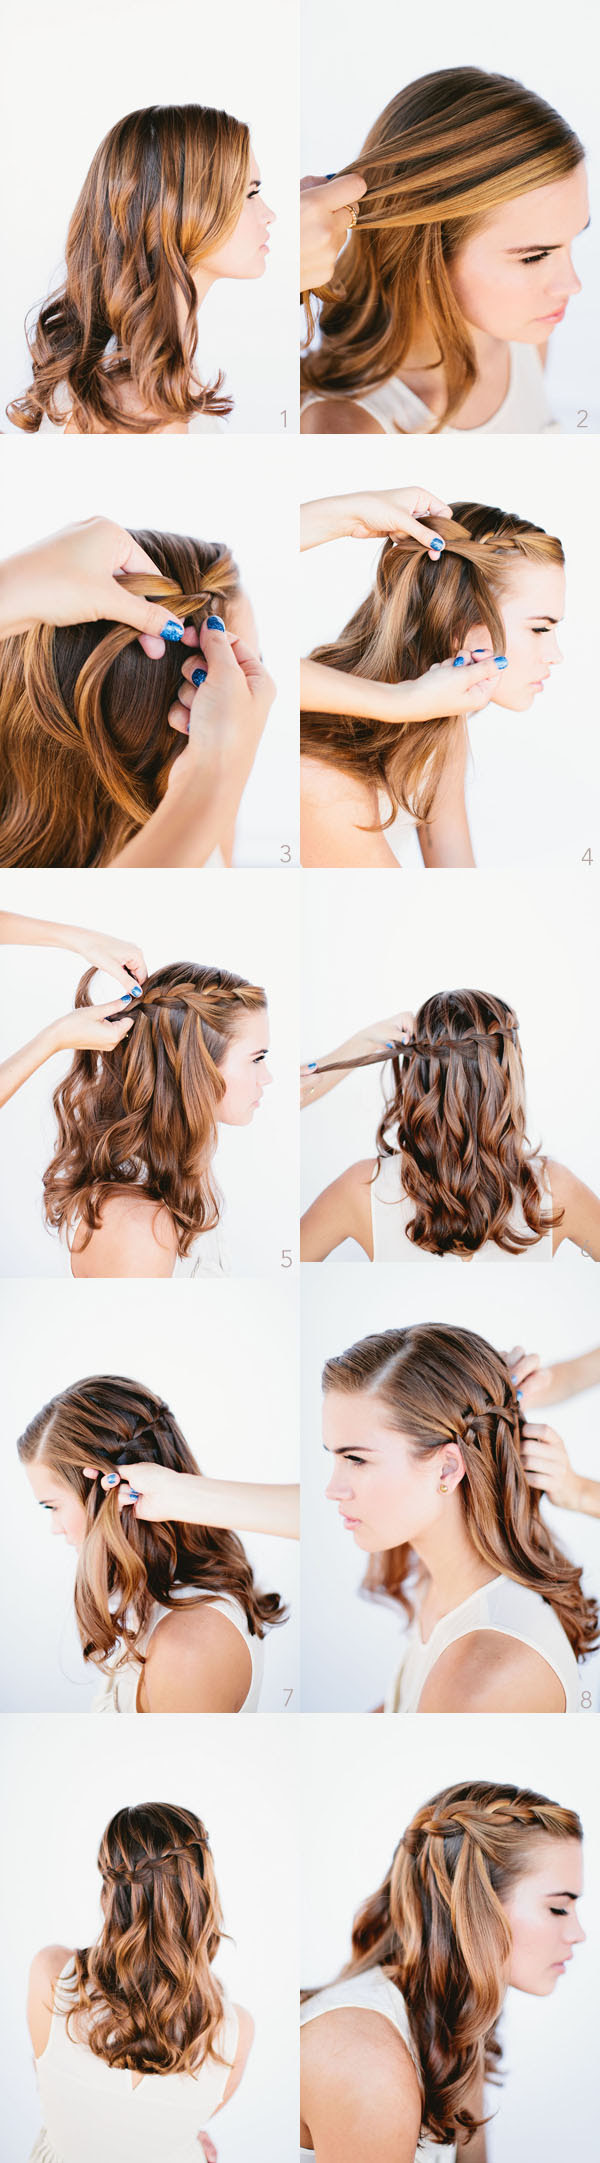 How to do waterfall braid wedding hairstyle for long hairs ...